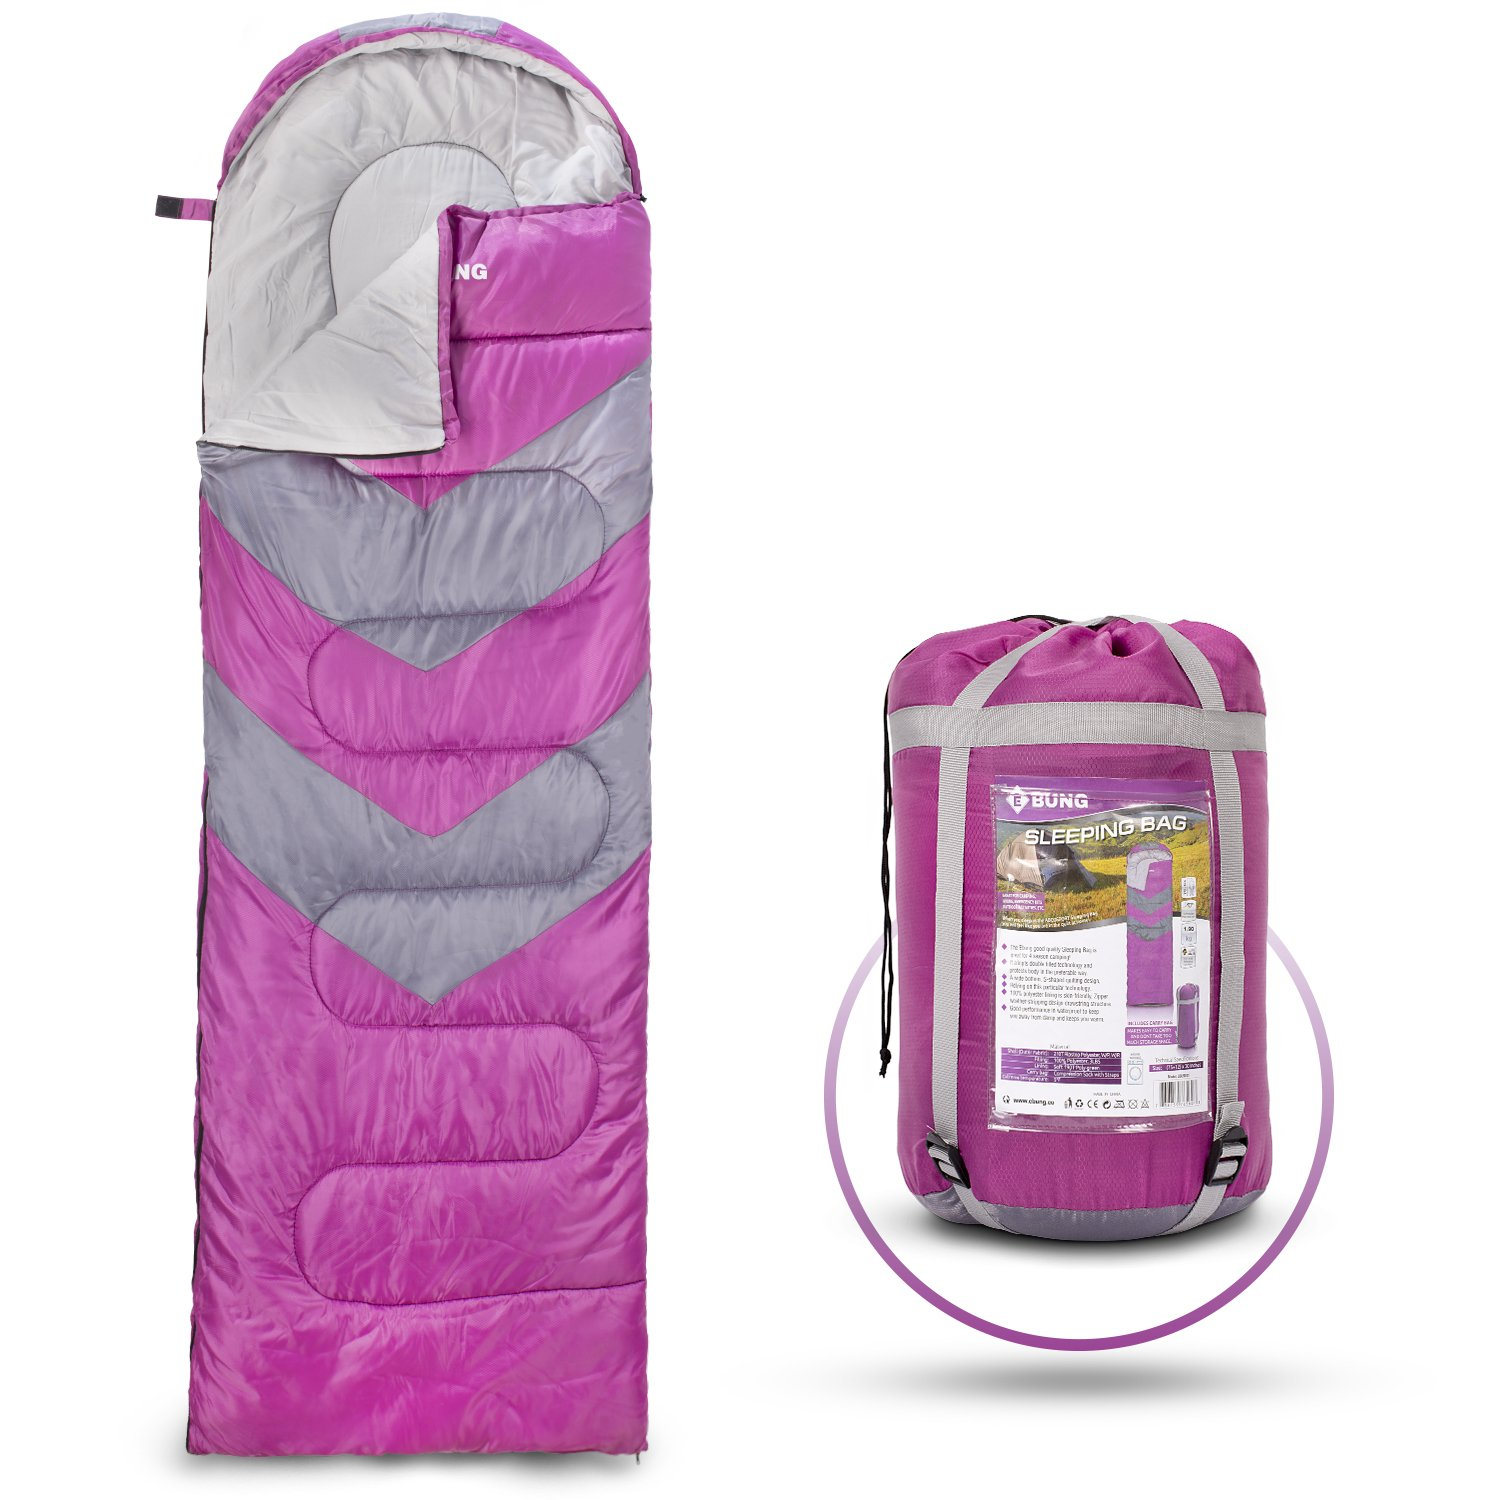 Ebung Extreme Weather Sleeping Bag for Adults, Boys & Girls, Teens – Protection from Cold – For Anyone upto 6.1' – Ideal Four Season Backpacking Sleeping Bag for Camping, Hiking, other Adventures by Ebung